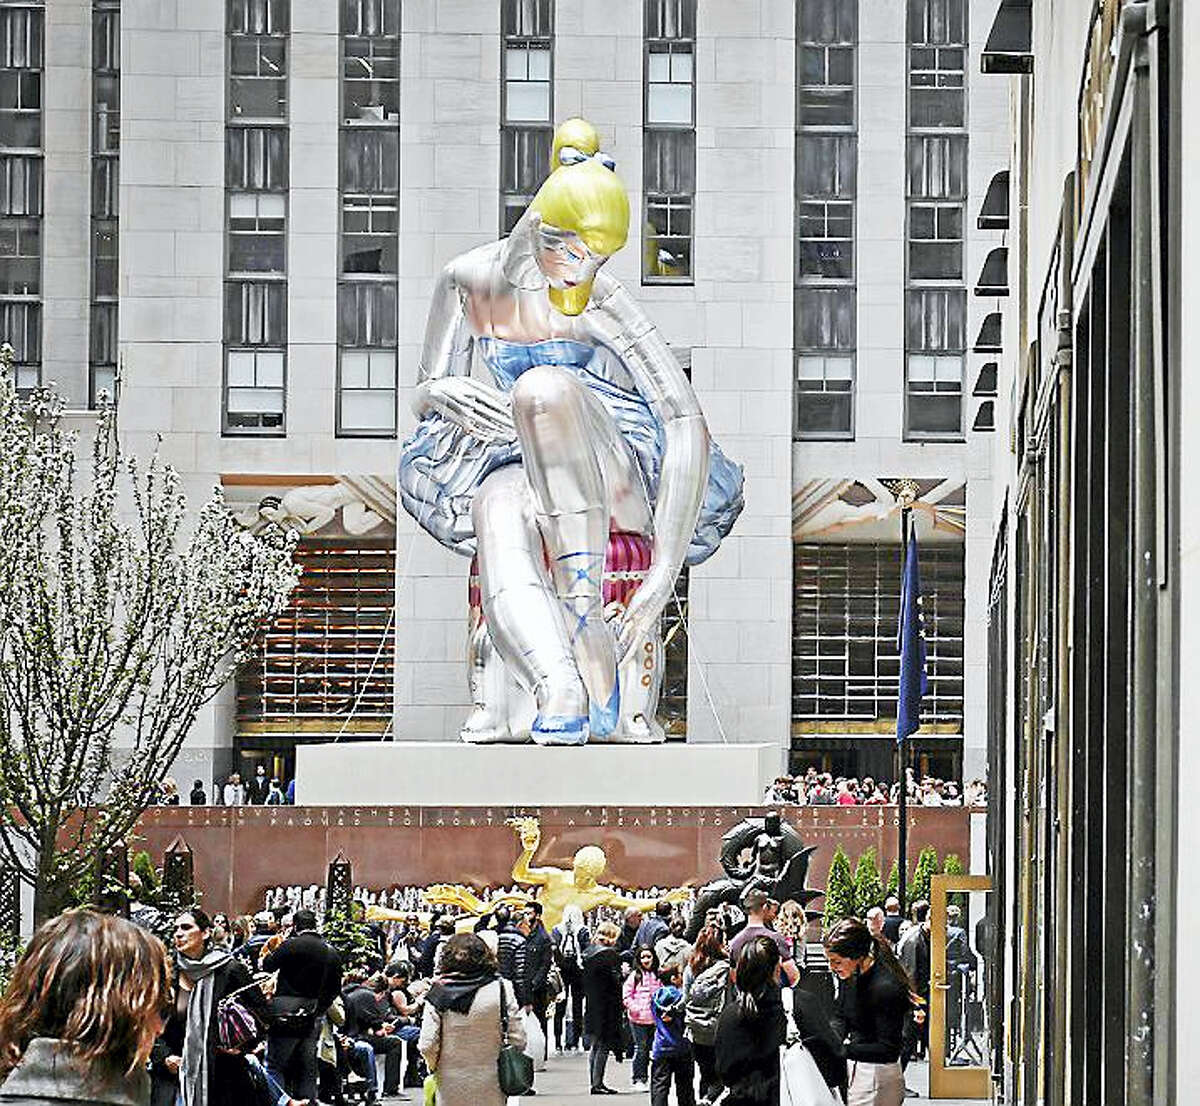 """""""Seated Ballerina"""", center, the public art exhibition of a 45-foot inflatable nylon sculpture depicting a seated ballerina from artist Jeff Koons' Antiquity series, is displayed at Rockefeller Center in New York City after it was unveiled Friday May 12, 2017."""